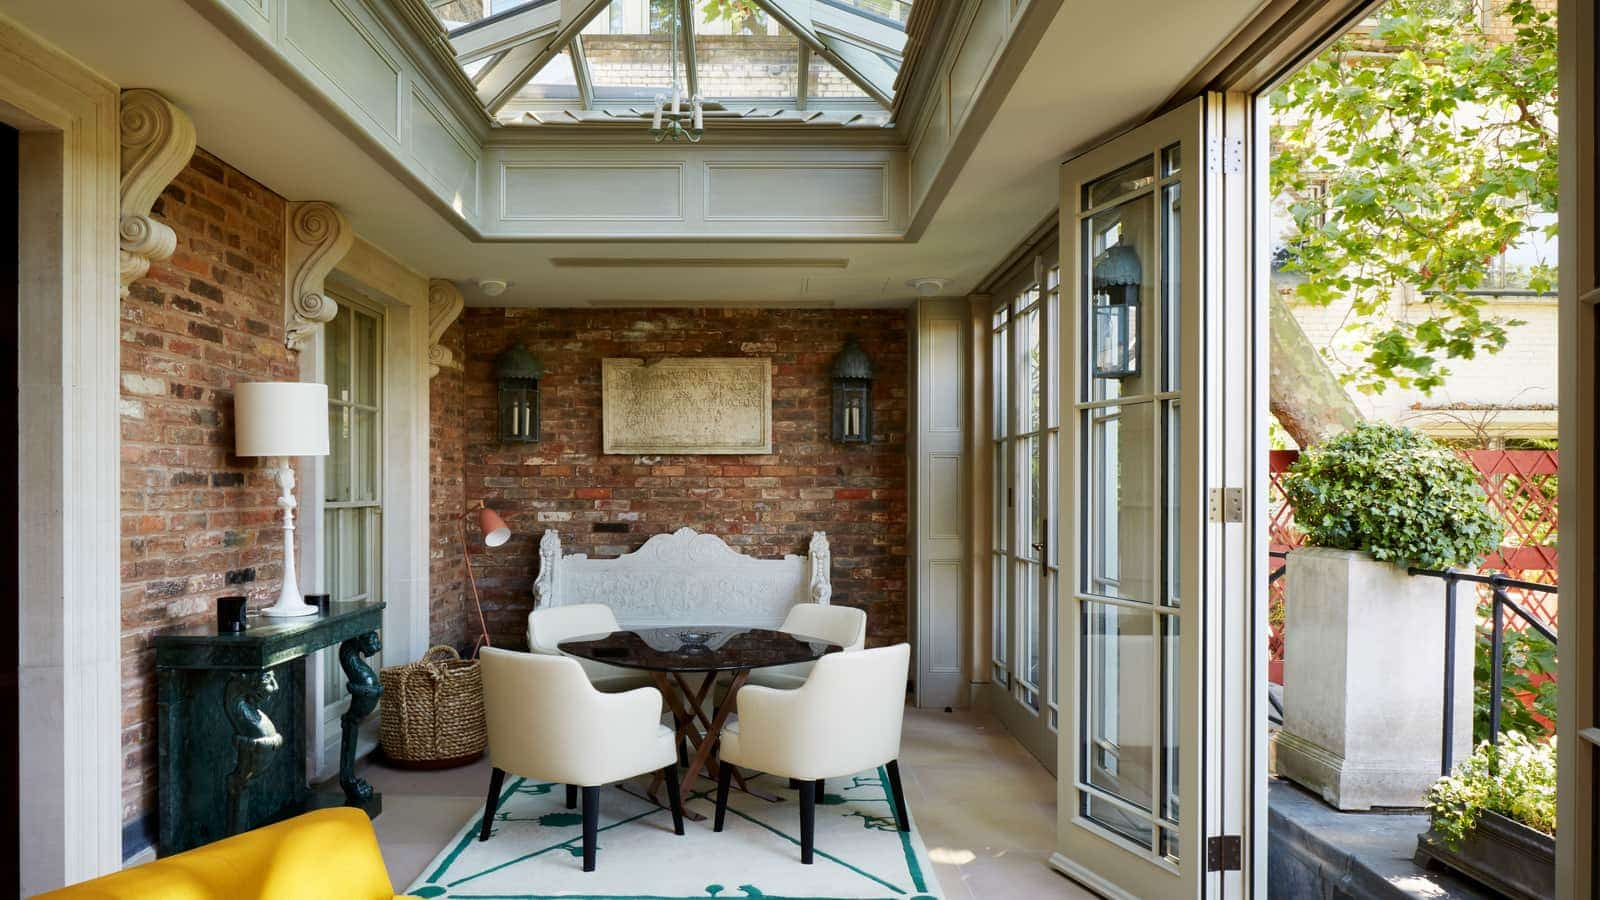 Interior view of orangery with french doors, roof lantern and exposed brick work